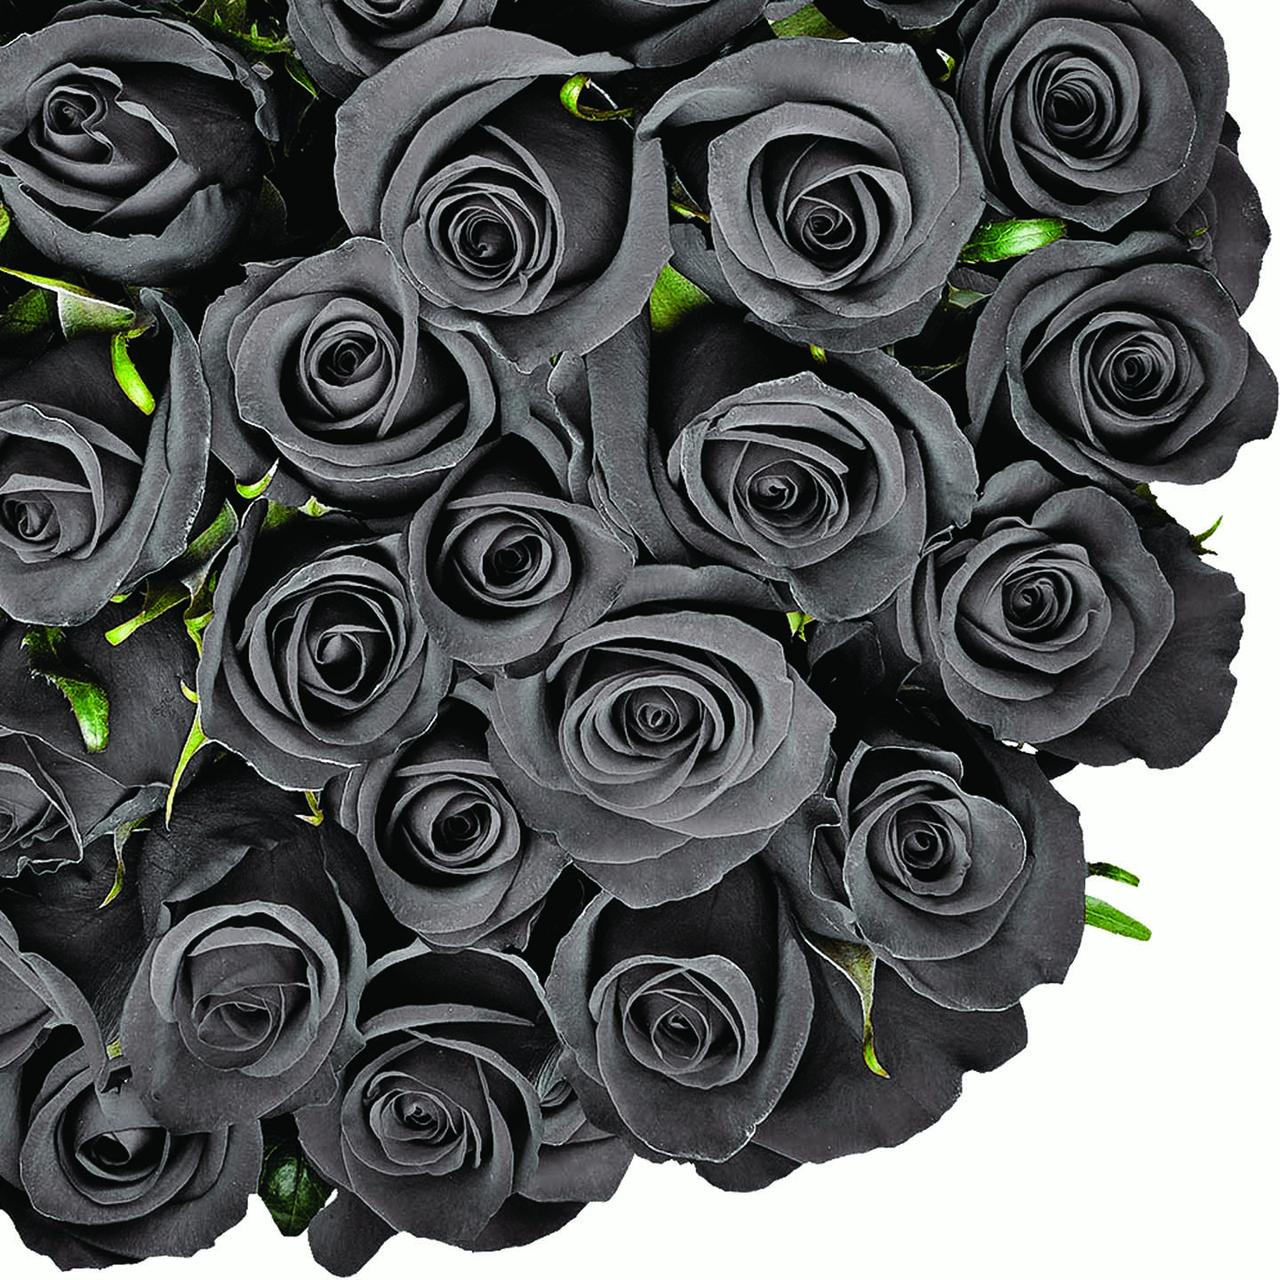 Natural black rose images galleries for How to make black roses